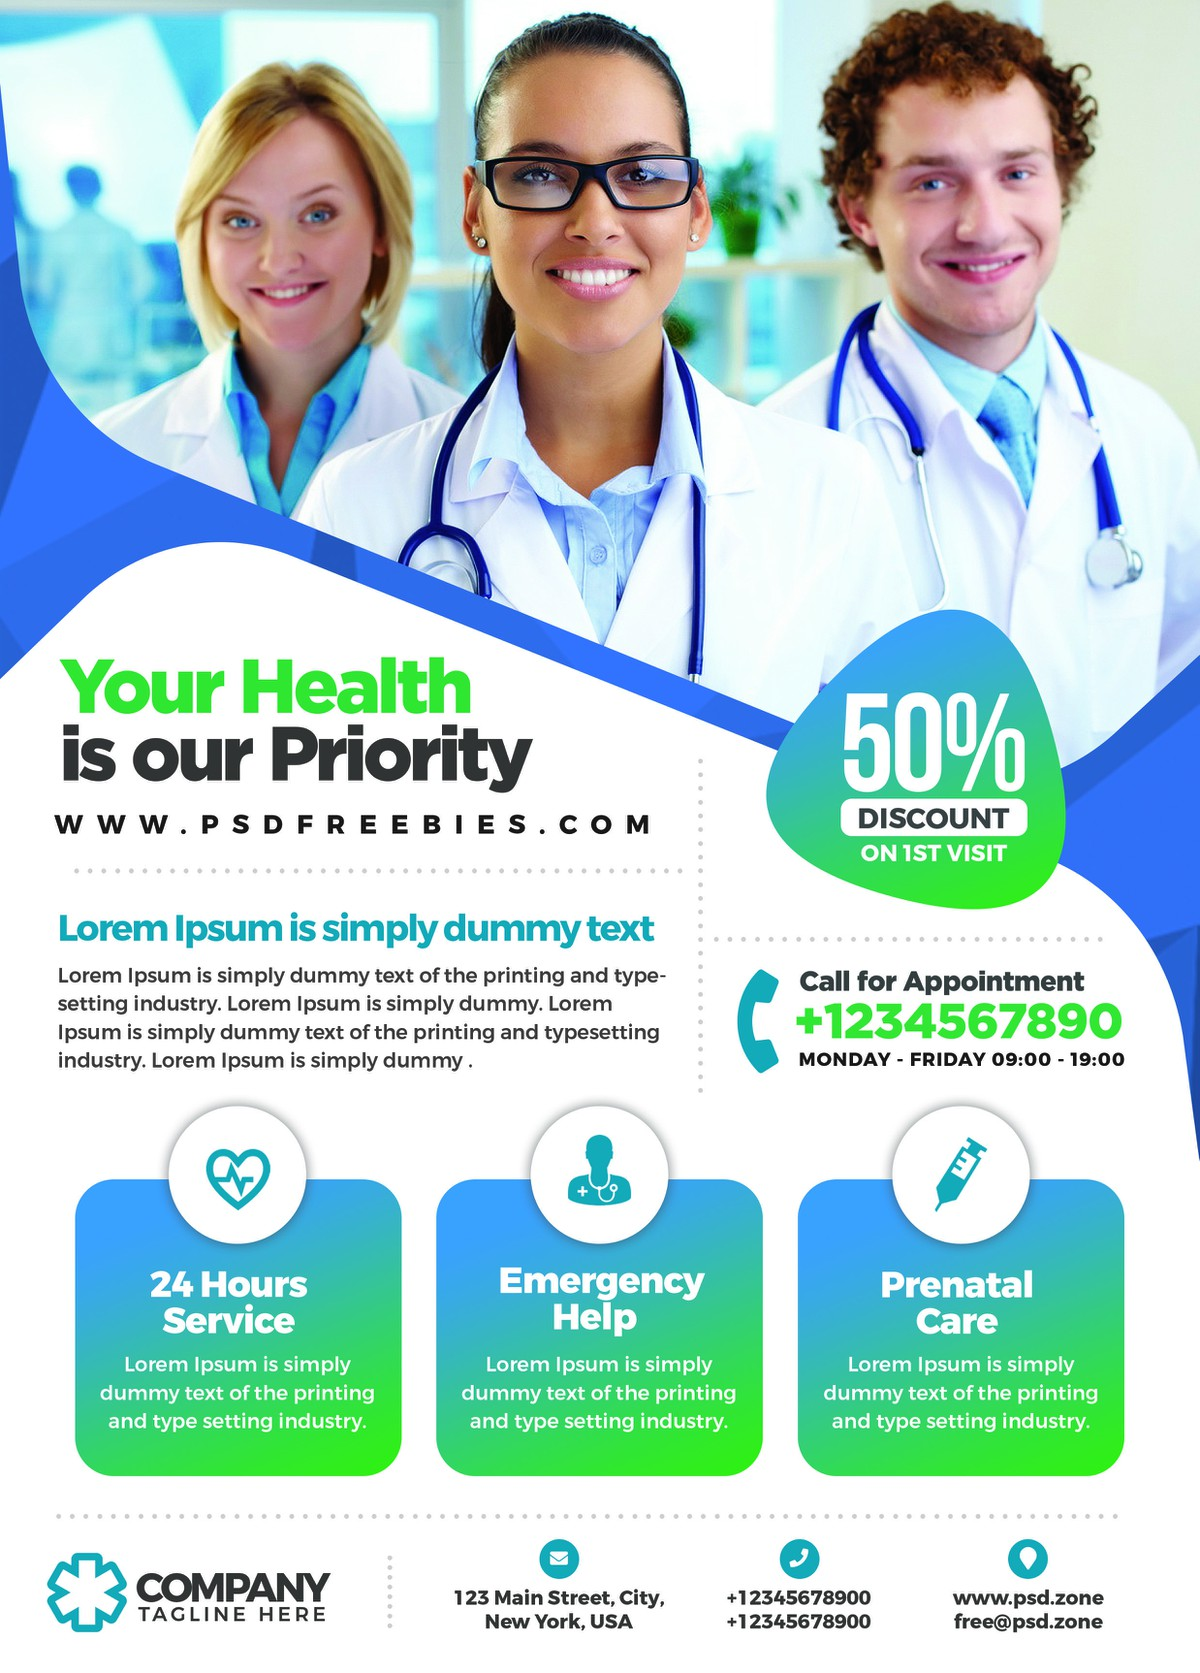 01-Medical_and_Health_Clinic_Flyer_PSD